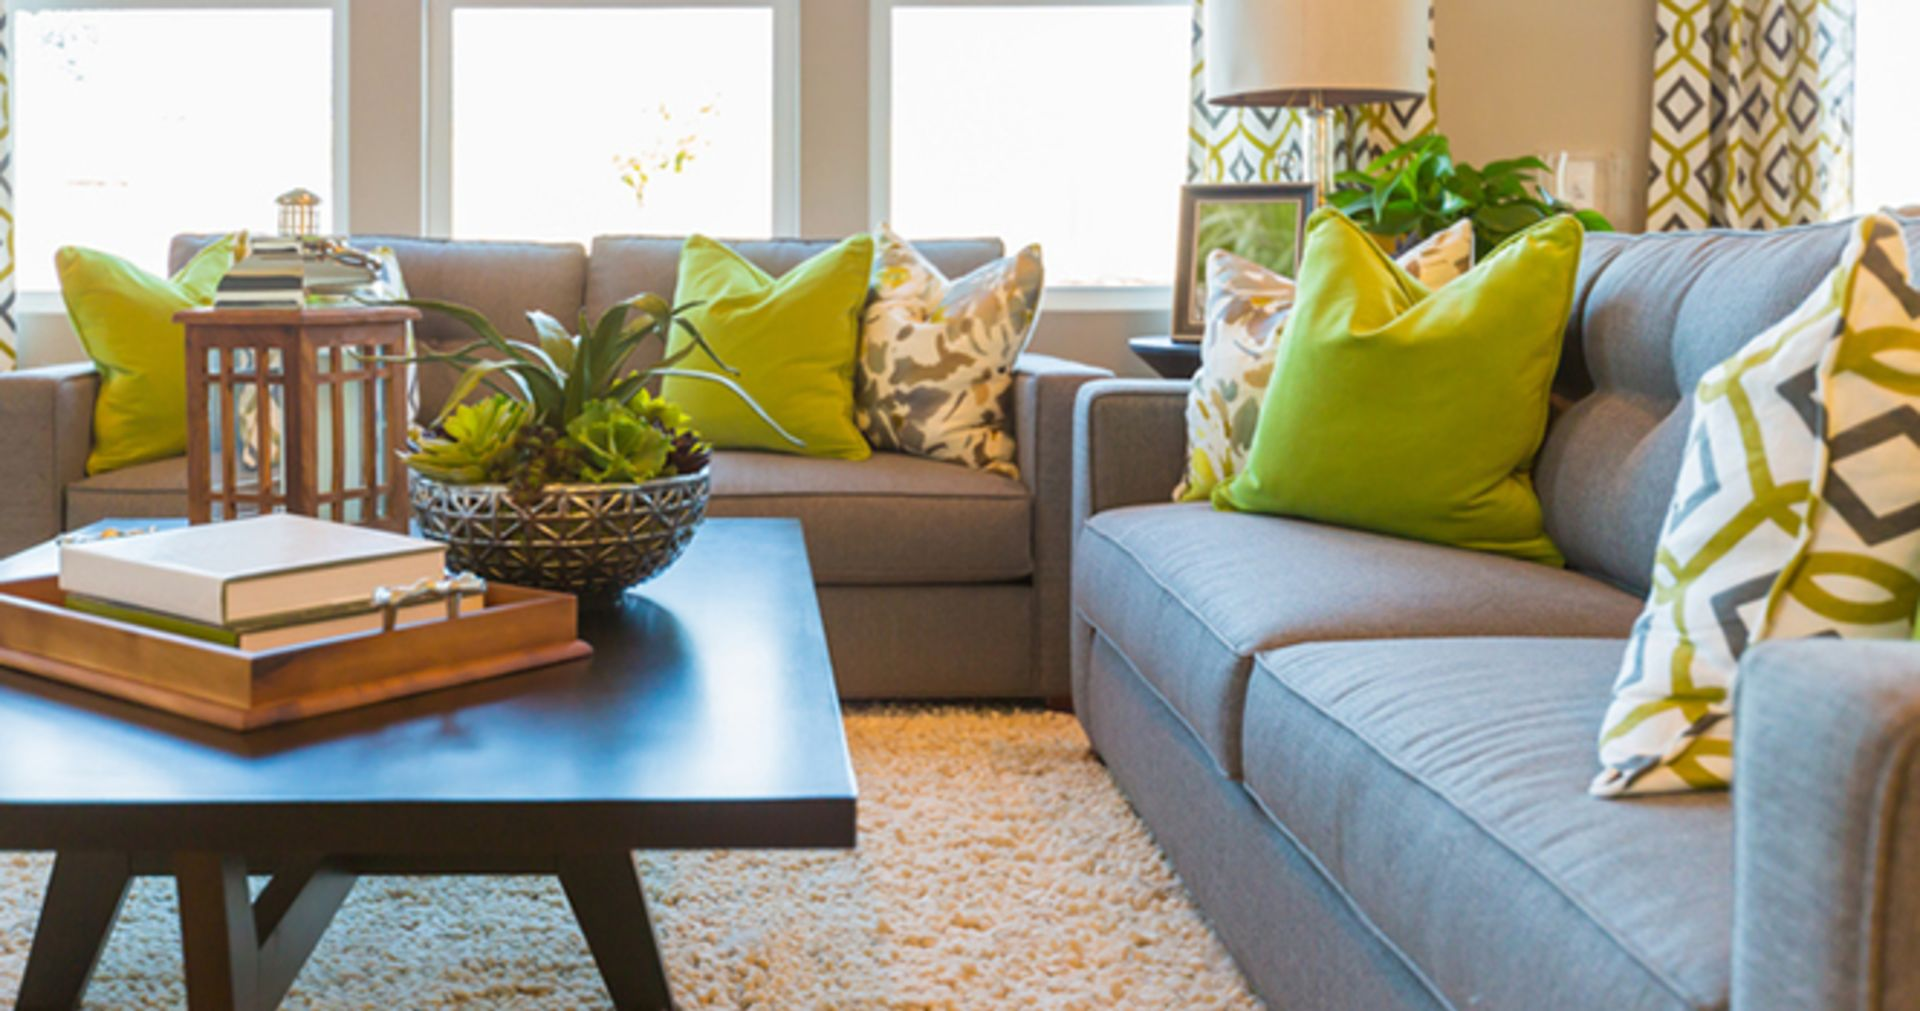 Staging the Most Important Rooms in Your Listing